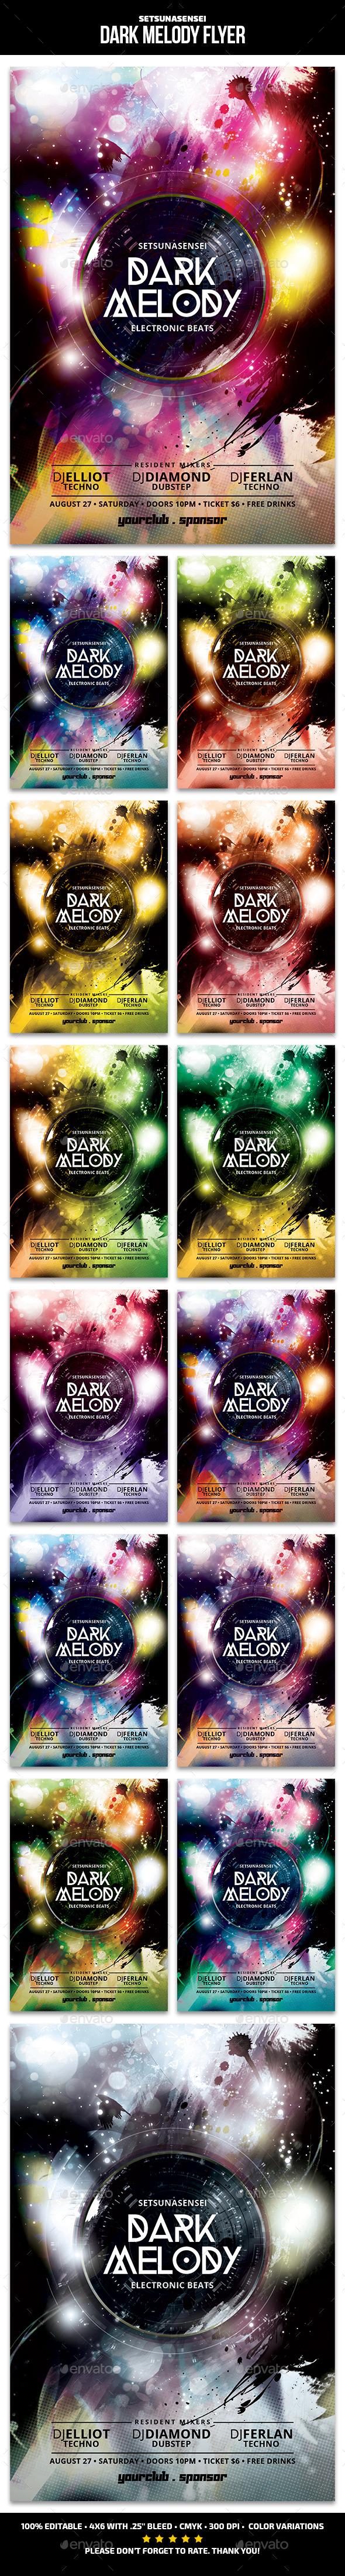 Dark Melody Flyer - Clubs & Parties Events